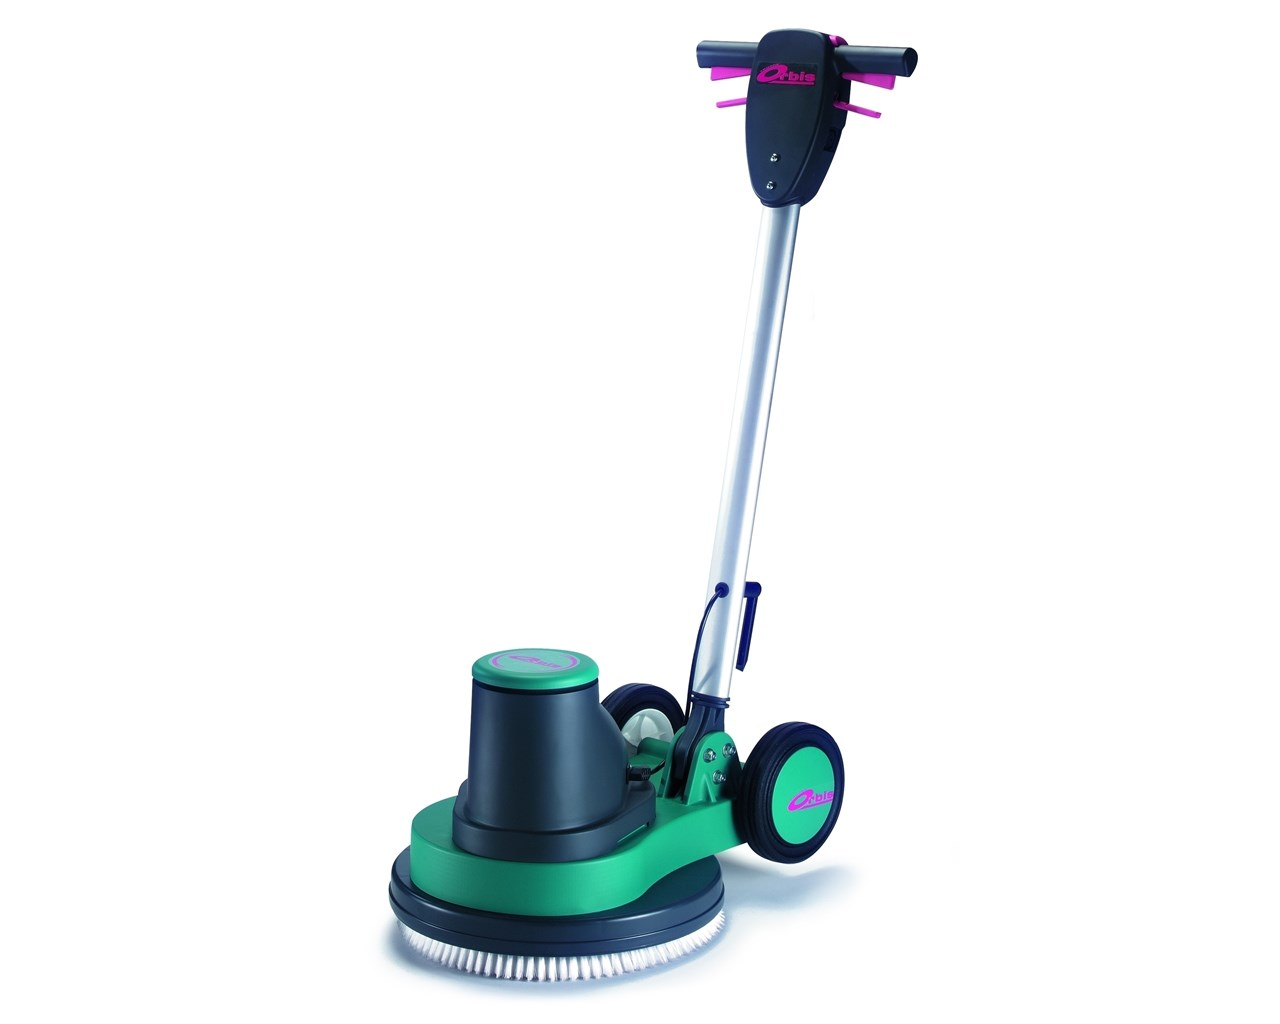 Orbis 400 17 rotary floor machine complete truvox for Floor cleaning machine